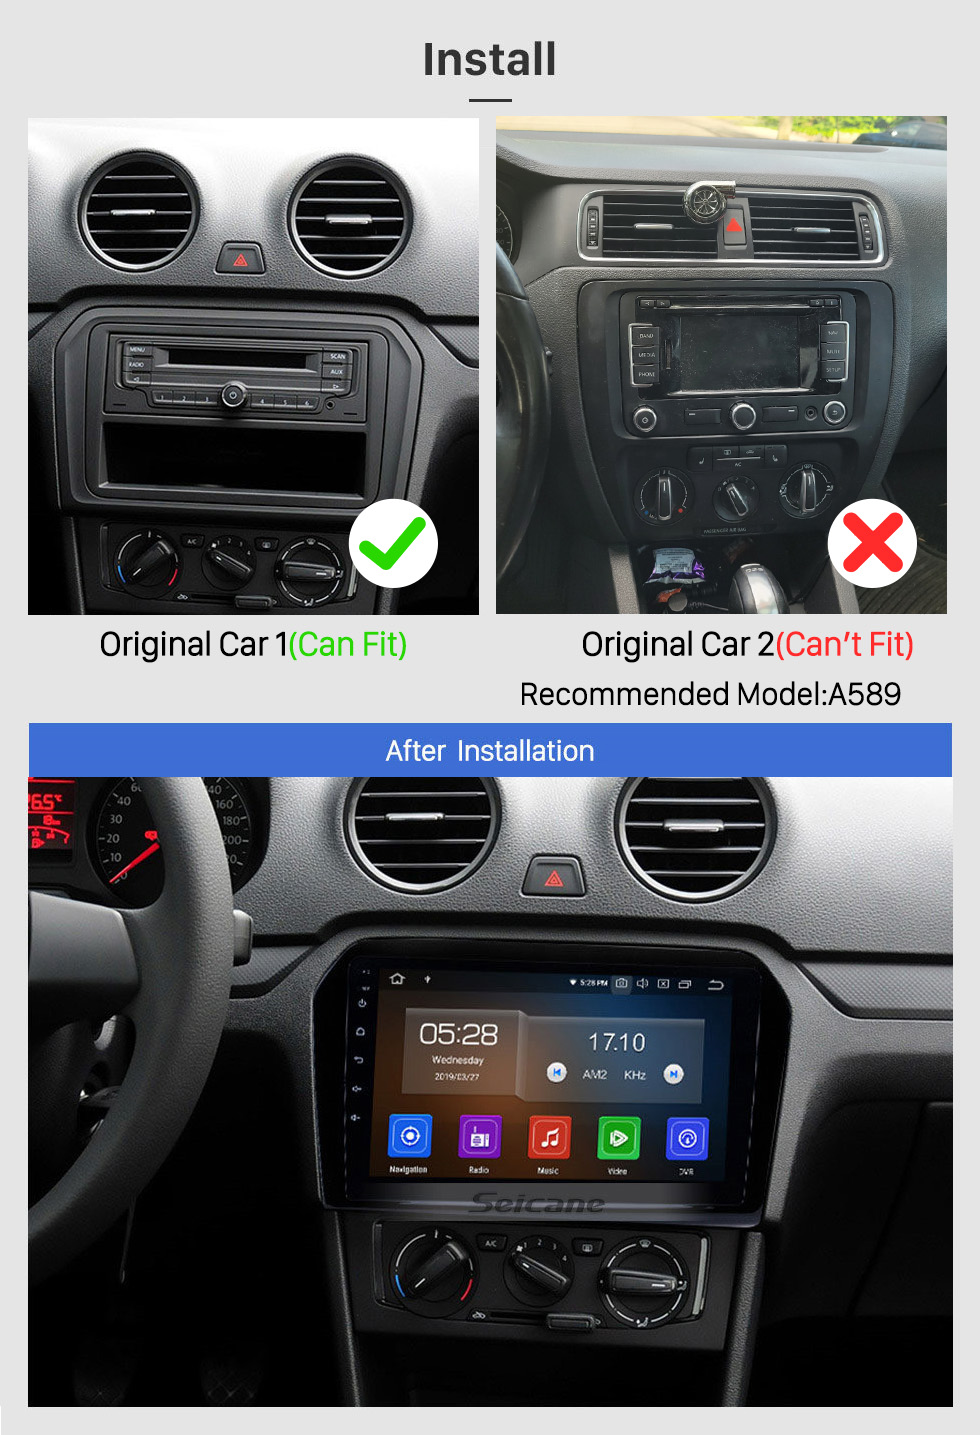 Seicane 9 Inch 2012 2013 2014 2015 VW Volkswagen Passat Android 10.0 HD Touchscreen Radio JETTA Support TPMS DVR OBD II Rear camera AUX 3G WiFi HD 1080P Video